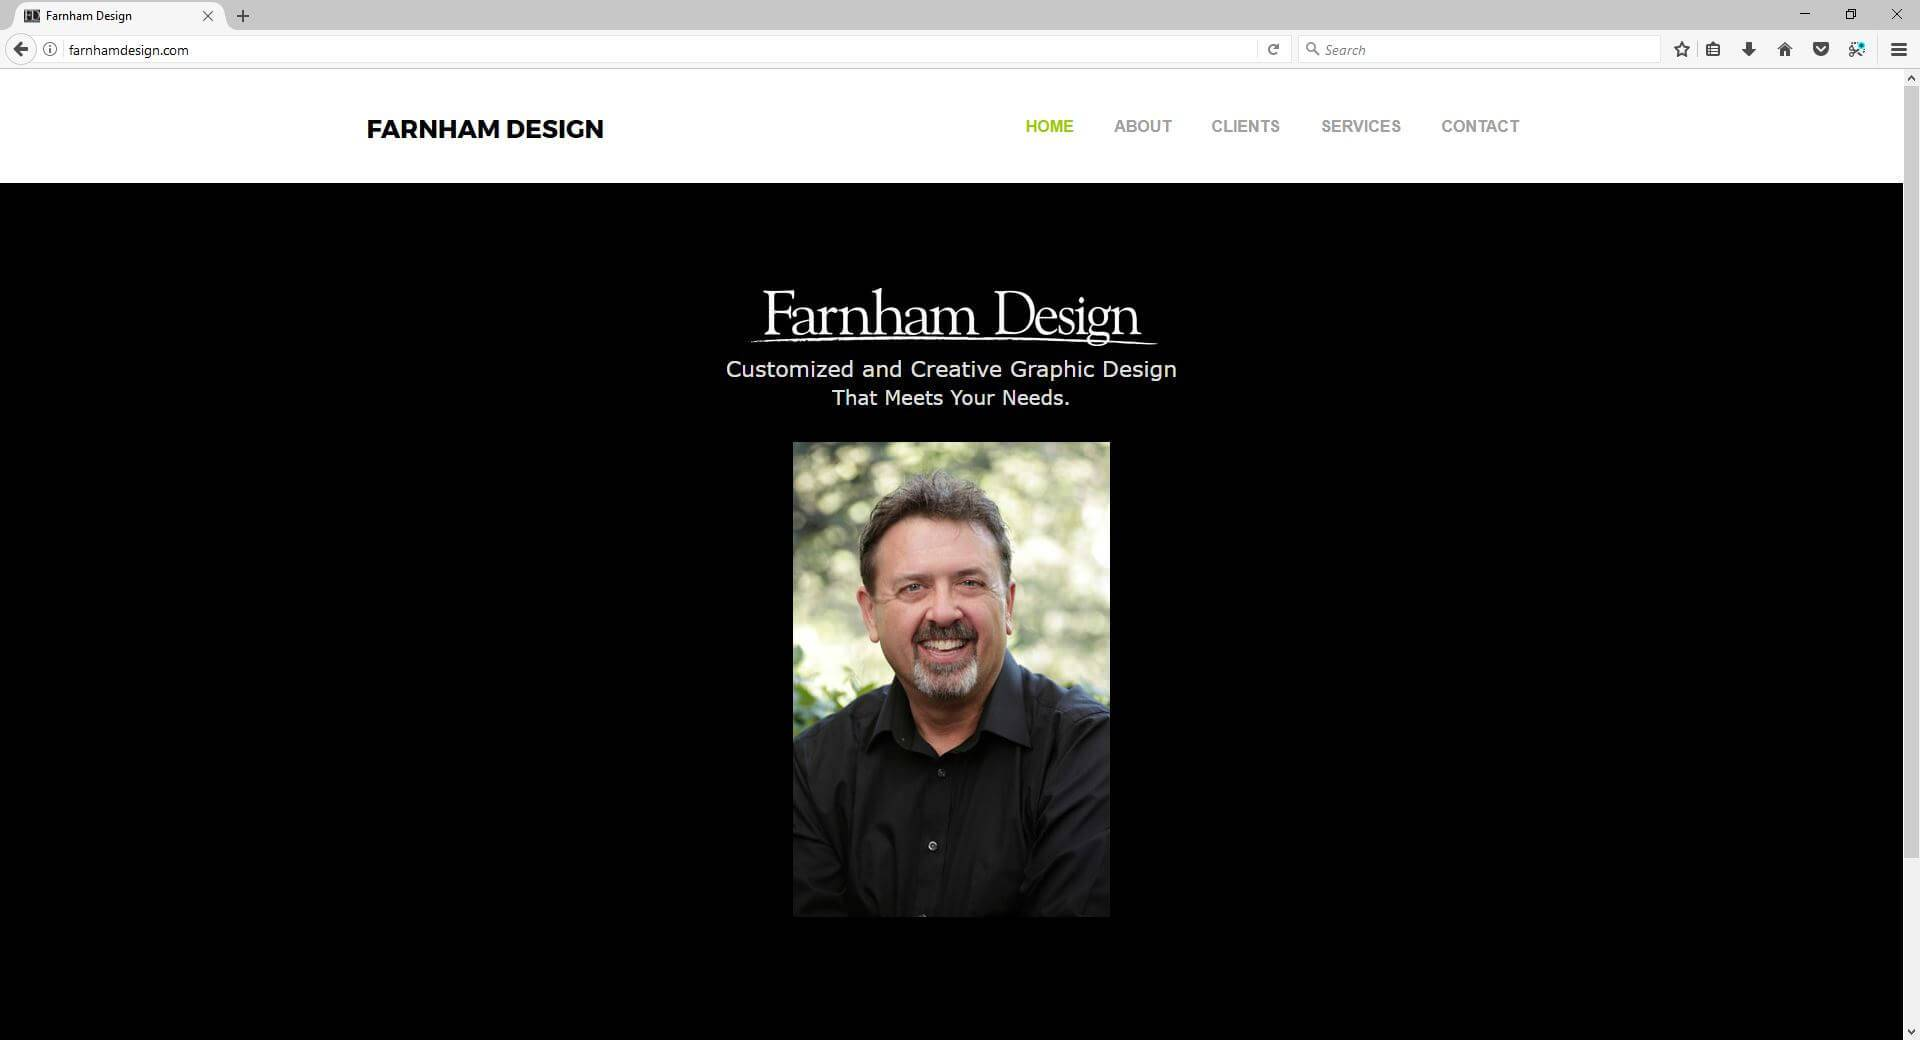 Farnham Design - farnhamdesign.com | Developed by JTag Internet Design